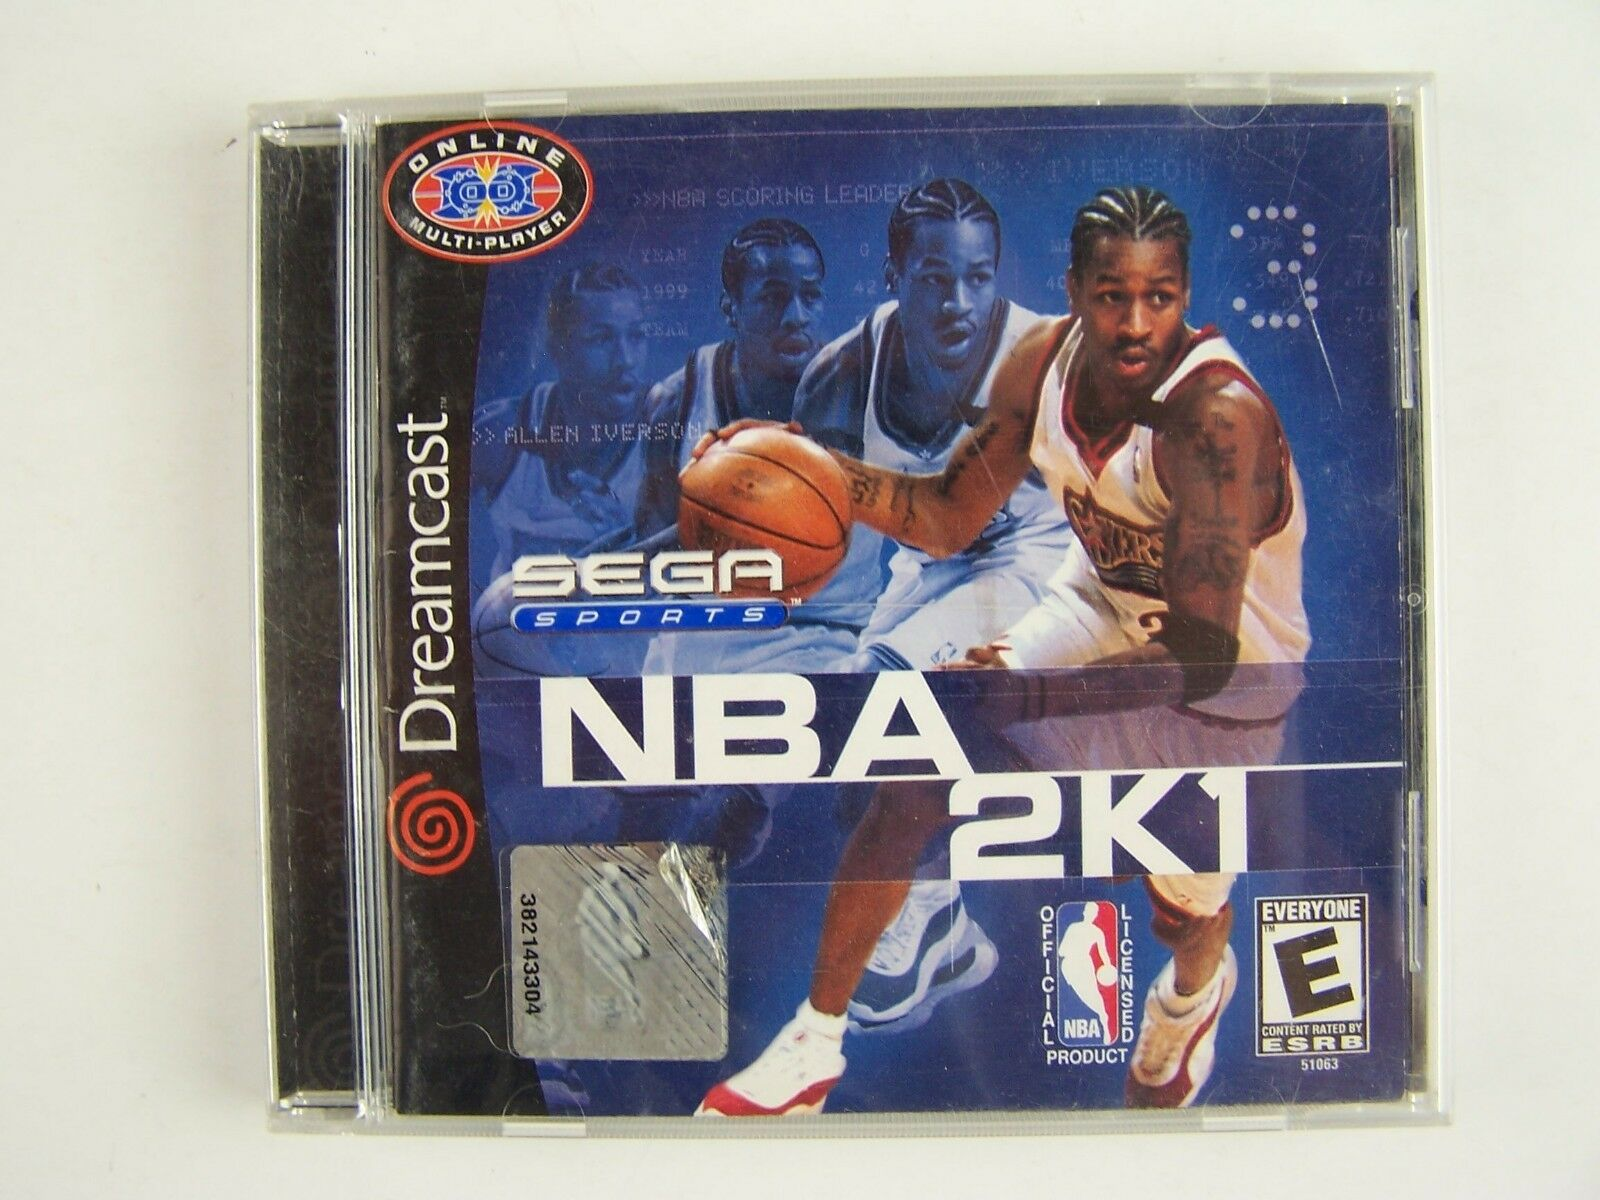 Sega Dreamcast NBA 2K1 Video Game